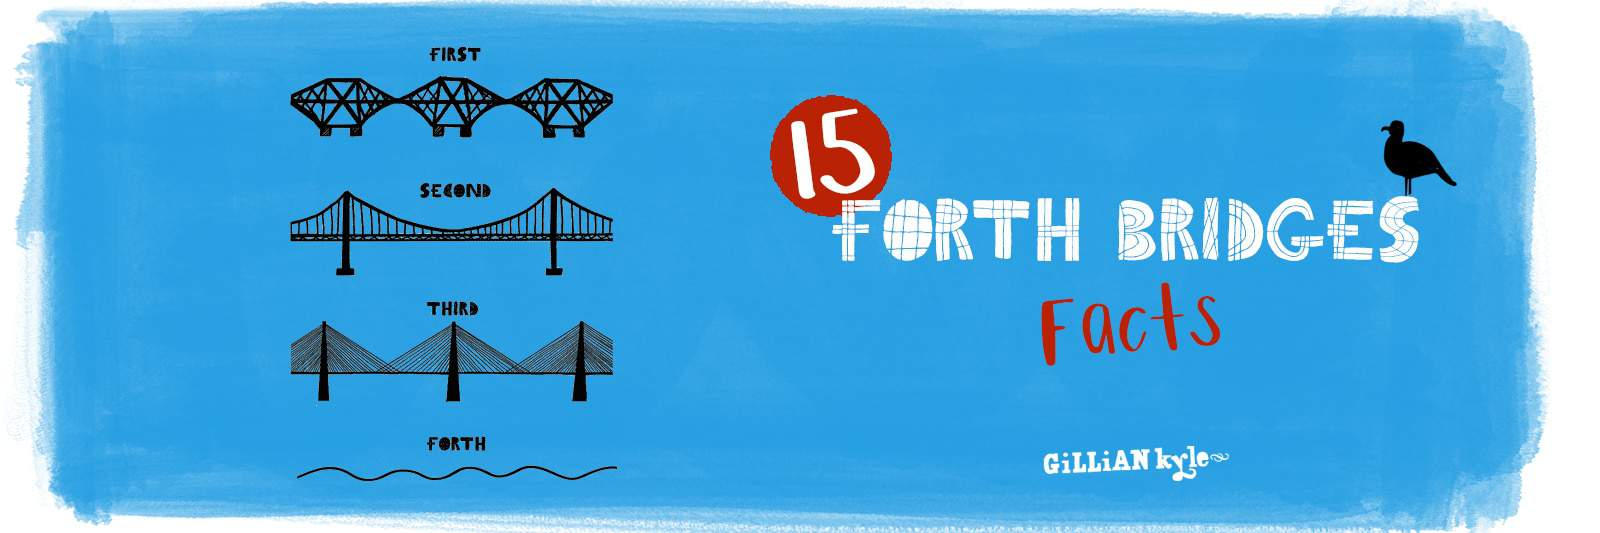 Forth Bridges Facts by Gillian Kyle